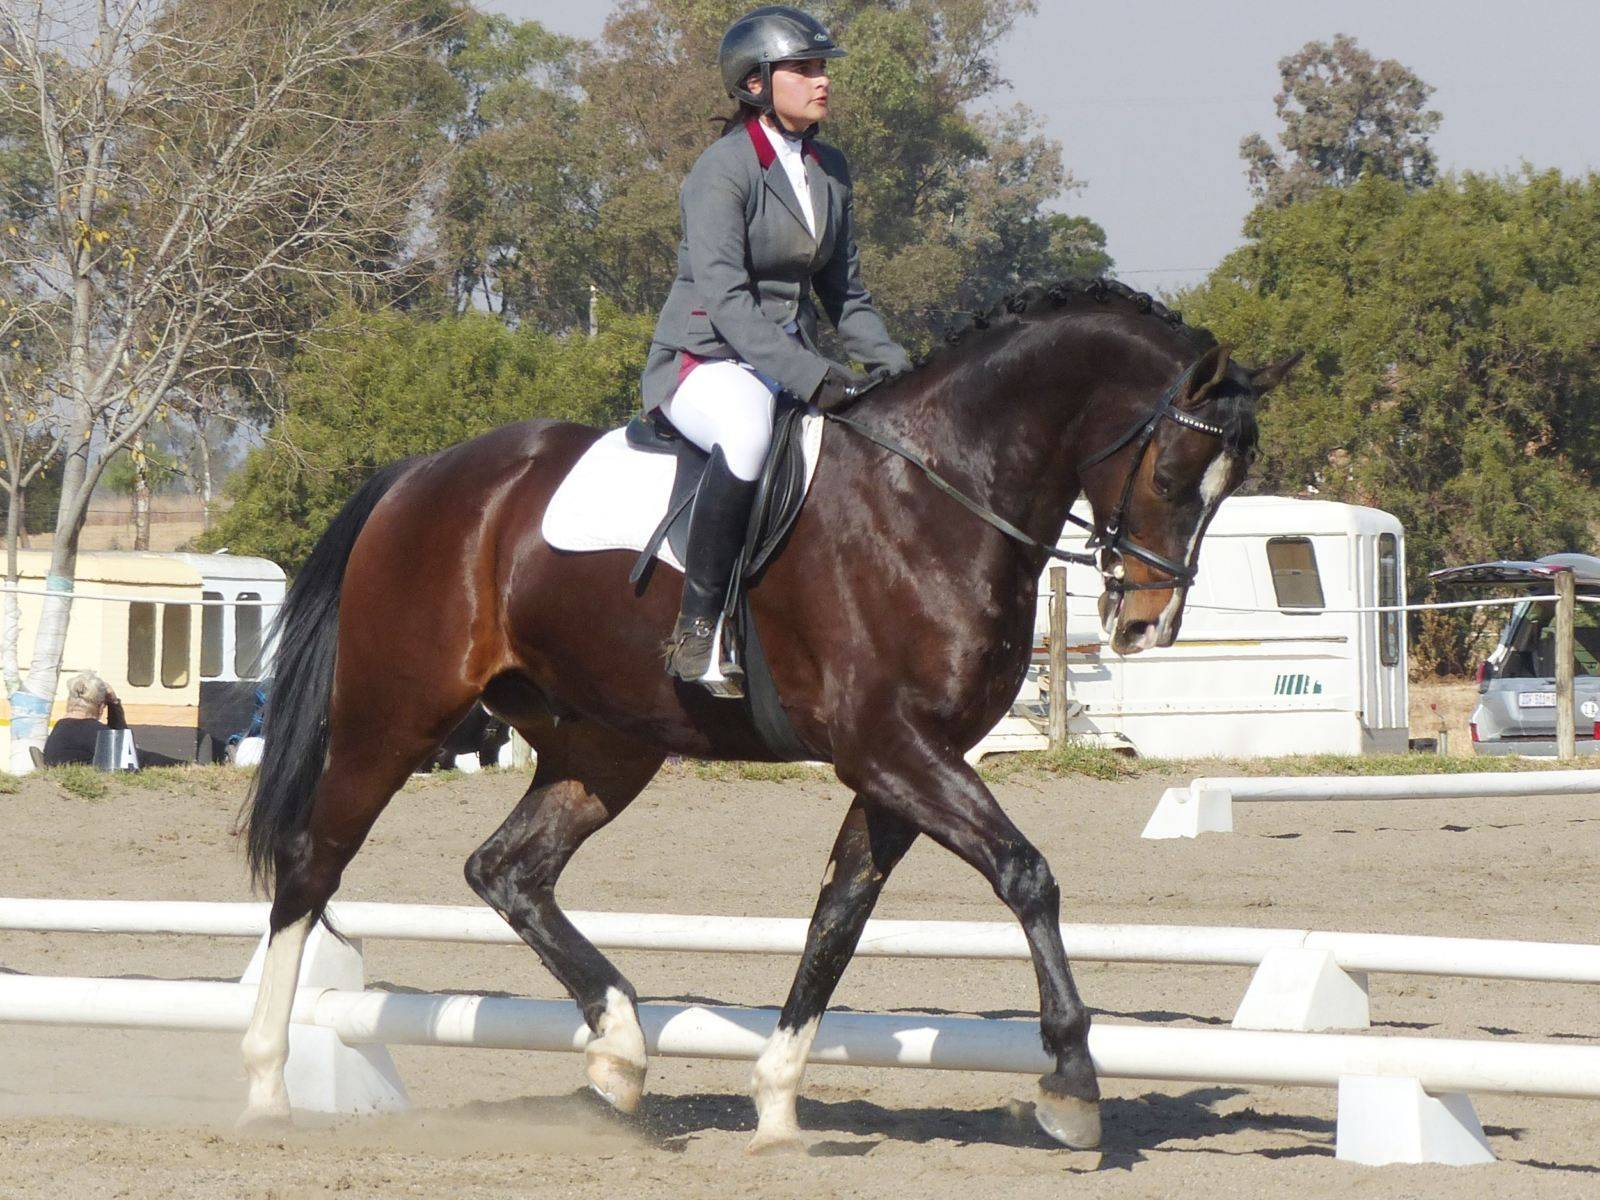 Dressage Horses for Sale South Africa